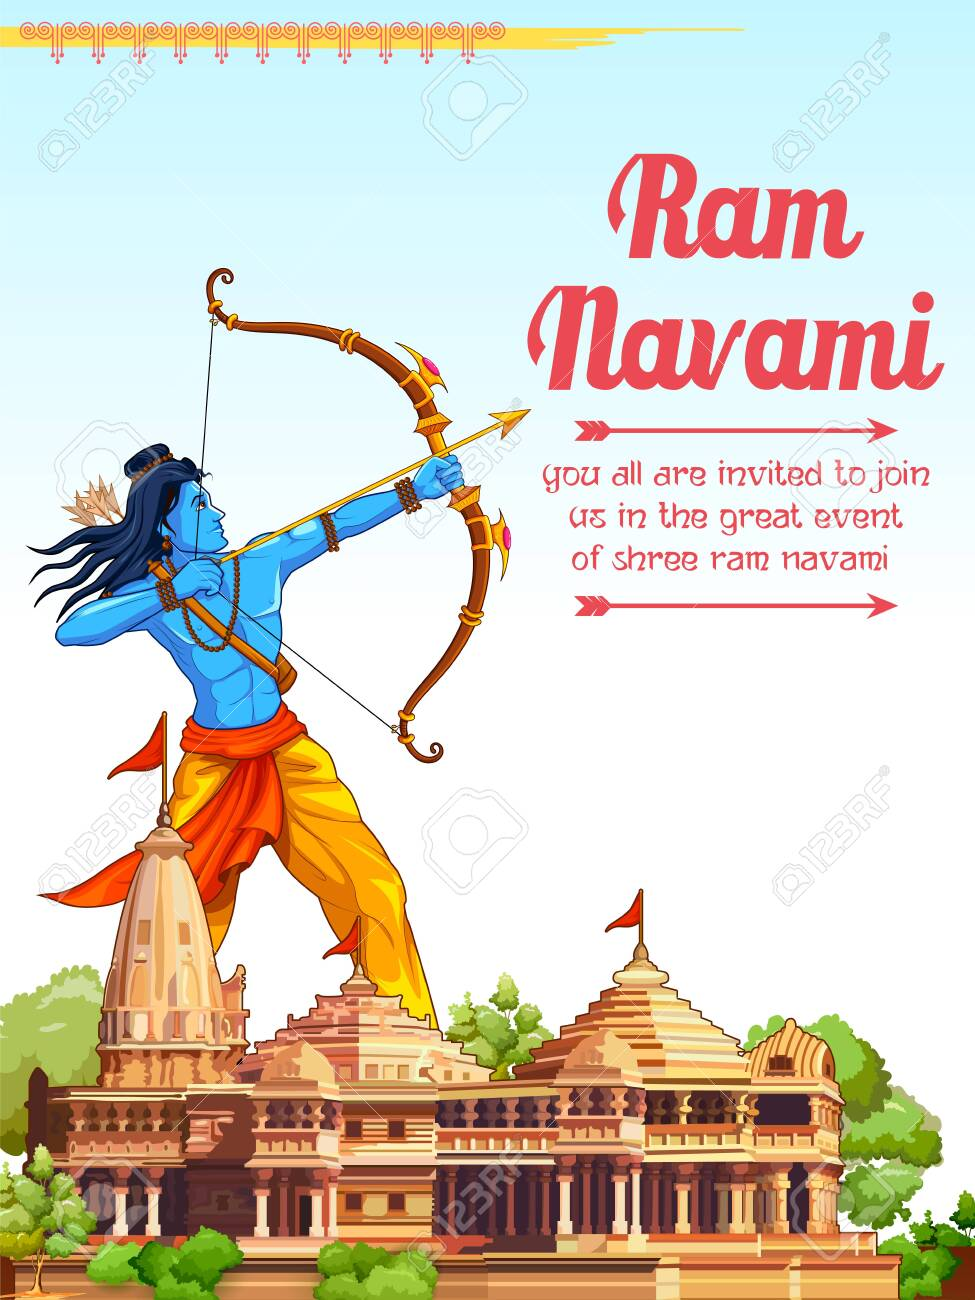 Illustration Of Lord Rama With Bow Arrow In Shree Ram Navami.. Royalty Free  Cliparts, Vectors, And Stock Illustration. Image 152885201.